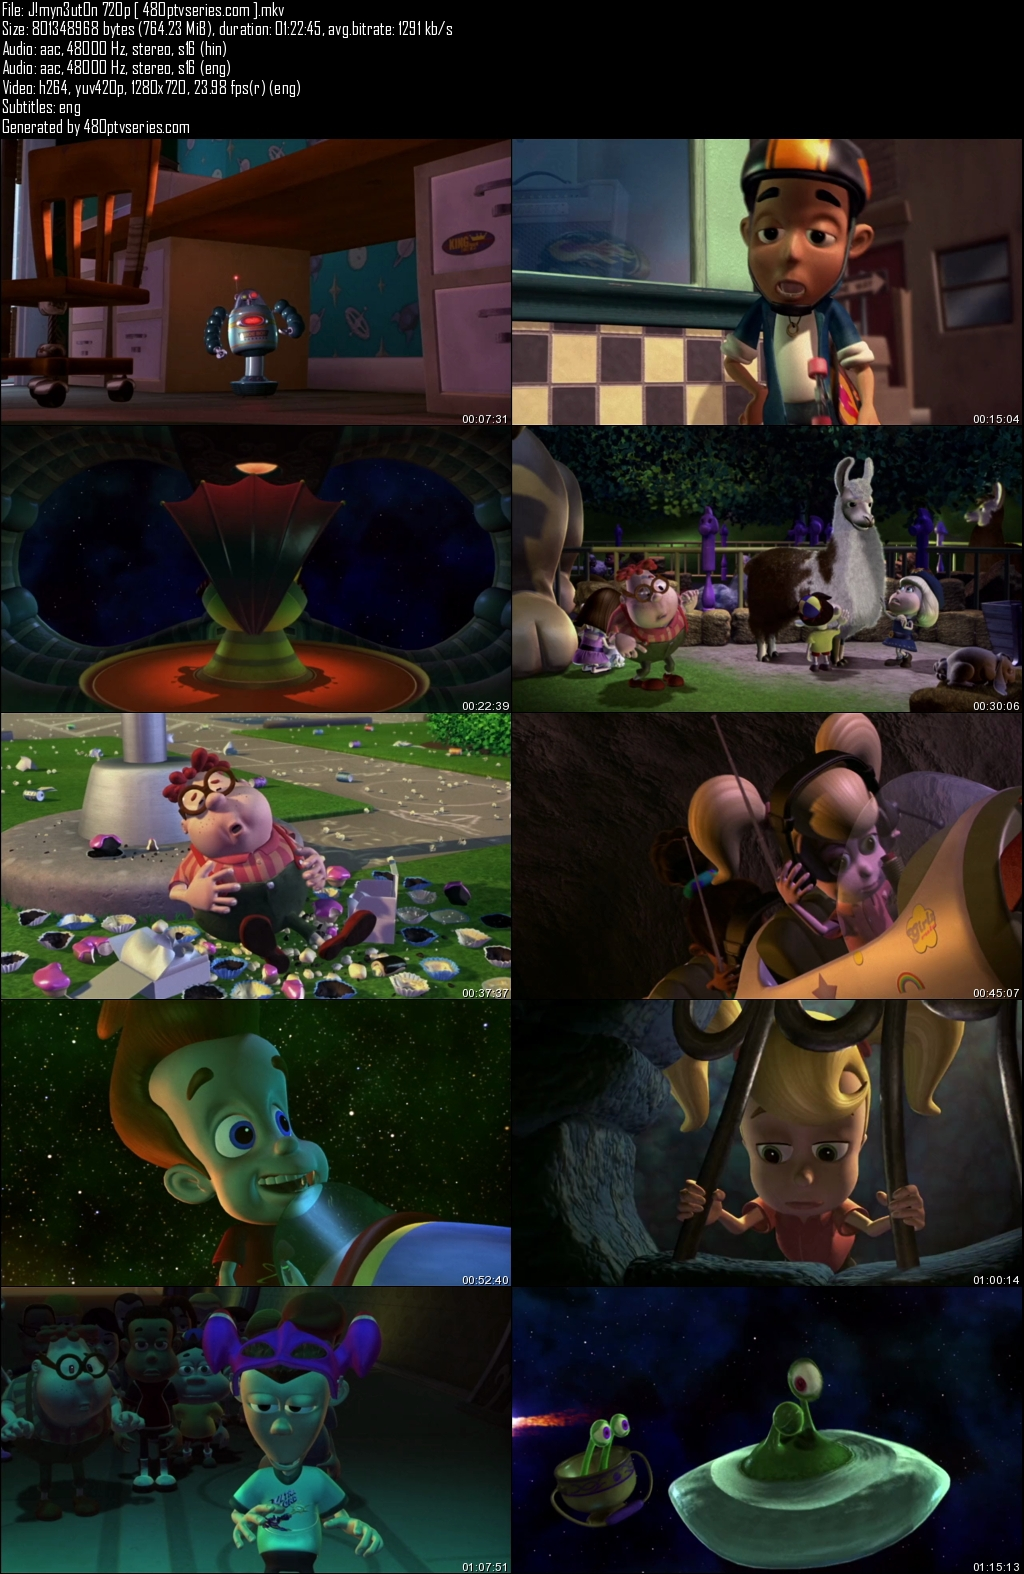 Jimmy Neutron Boy Genius Full Movie In Hindi : jimmy, neutron, genius, movie, hindi, Jimmy, Neutron, Genius, (2001), 750Mb, Hindi, Audio, Movie, Download, BRRip, Series